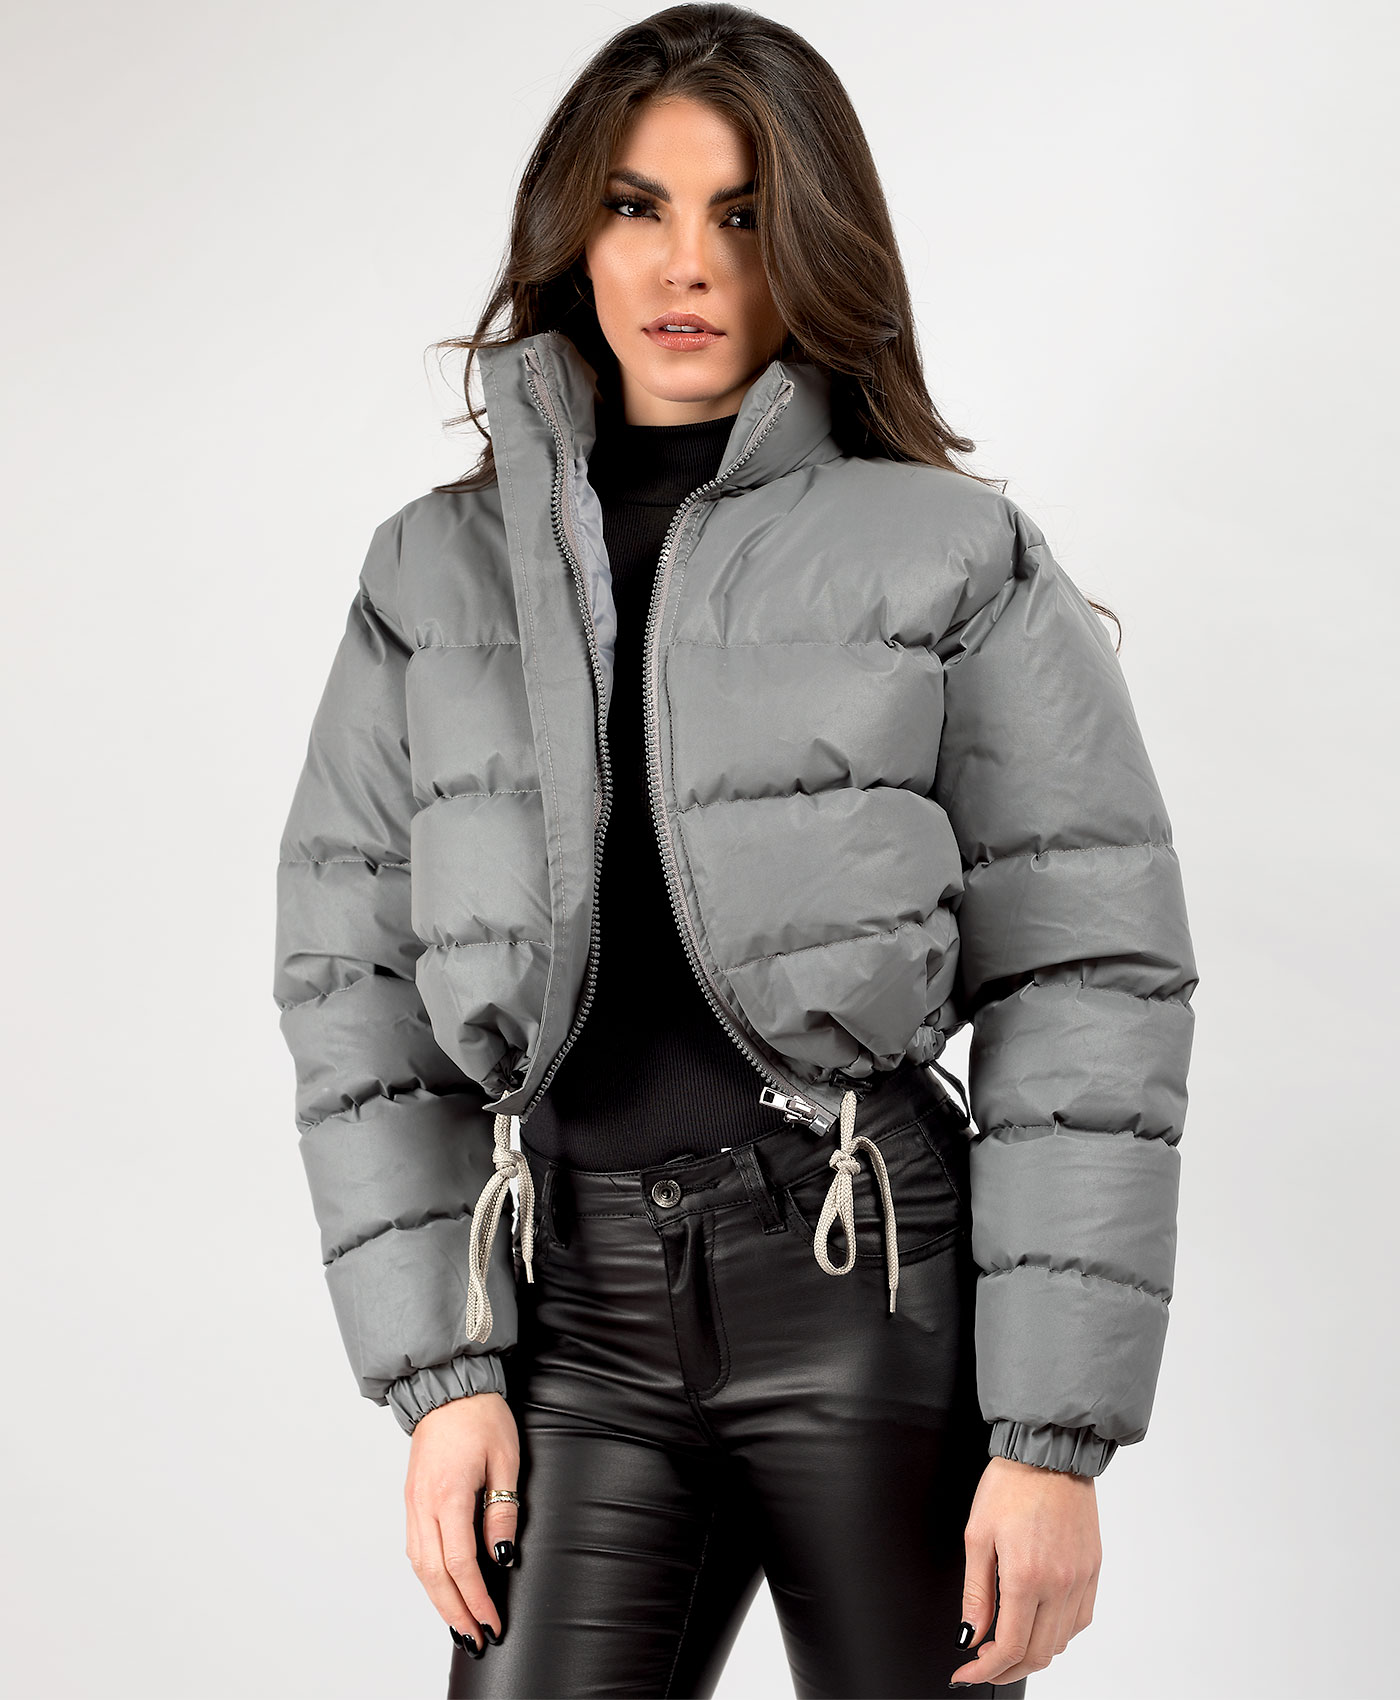 Womens-Reflective-Hi-Visibility-Thick-Puffer-Padded-Quilted-Cropped-Jacket-Coat Indexbild 21